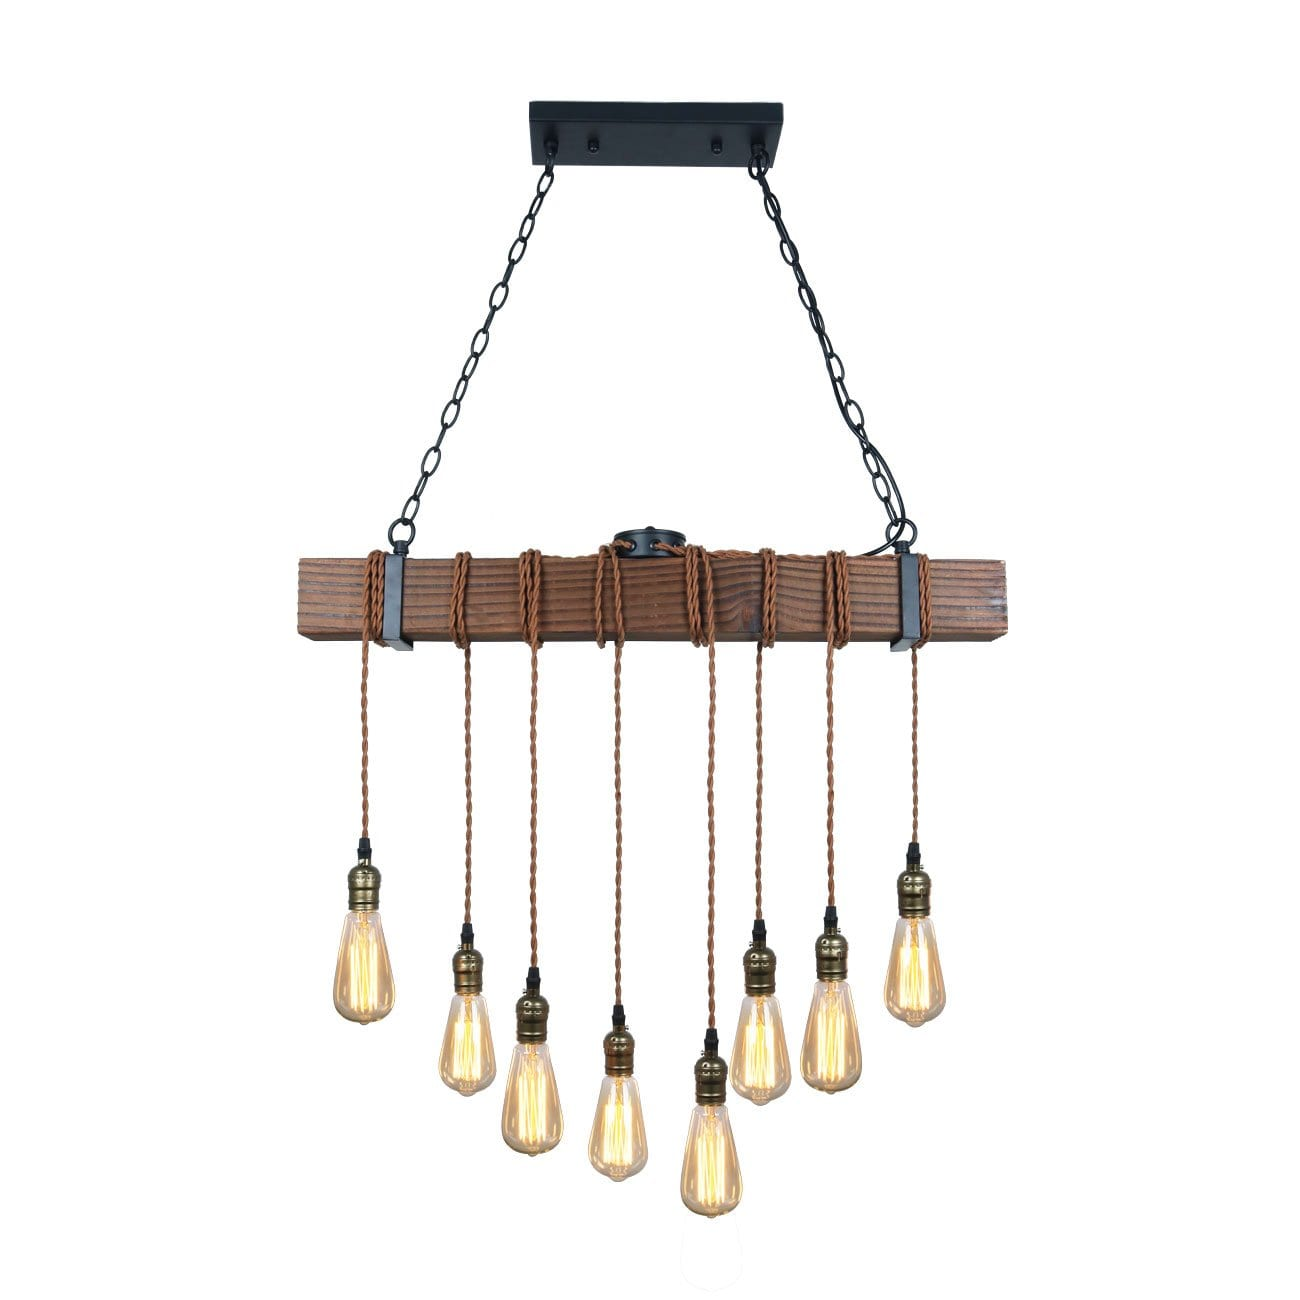 Unitary Brand Rustic Hanging Multi Pendant Light with 8 (320W) E26 Bulb Sockets, Painted Black Wood Finish